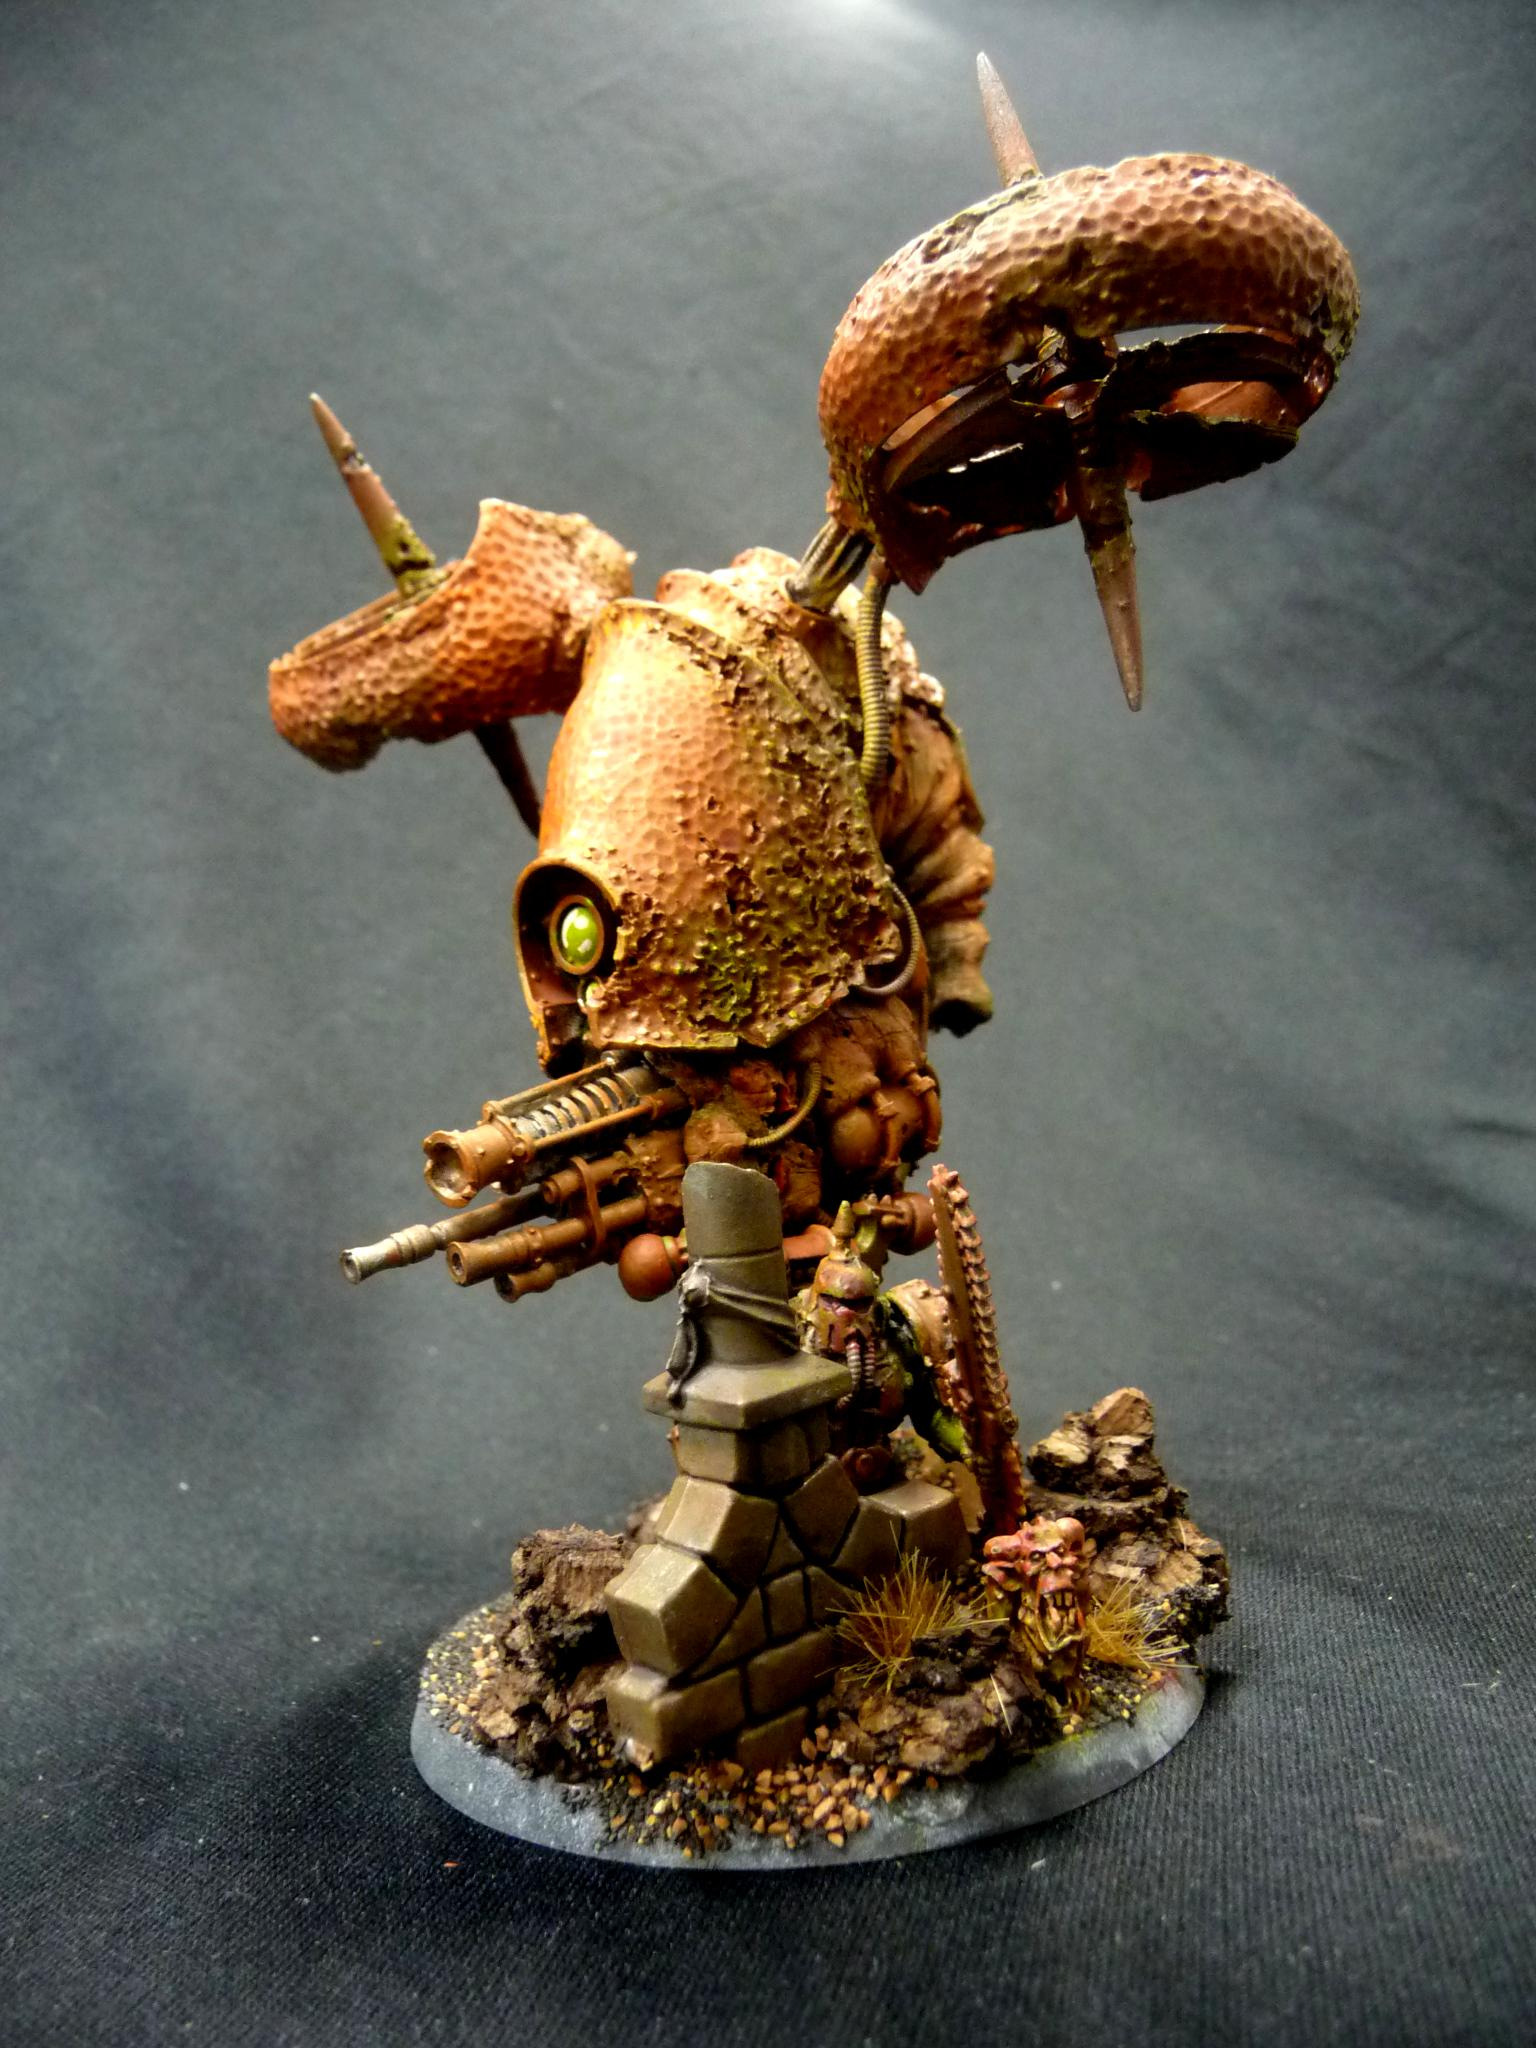 Blight Drone, Chaos, Death Guard, Forge World, Nurgle, Warhammer 40,000